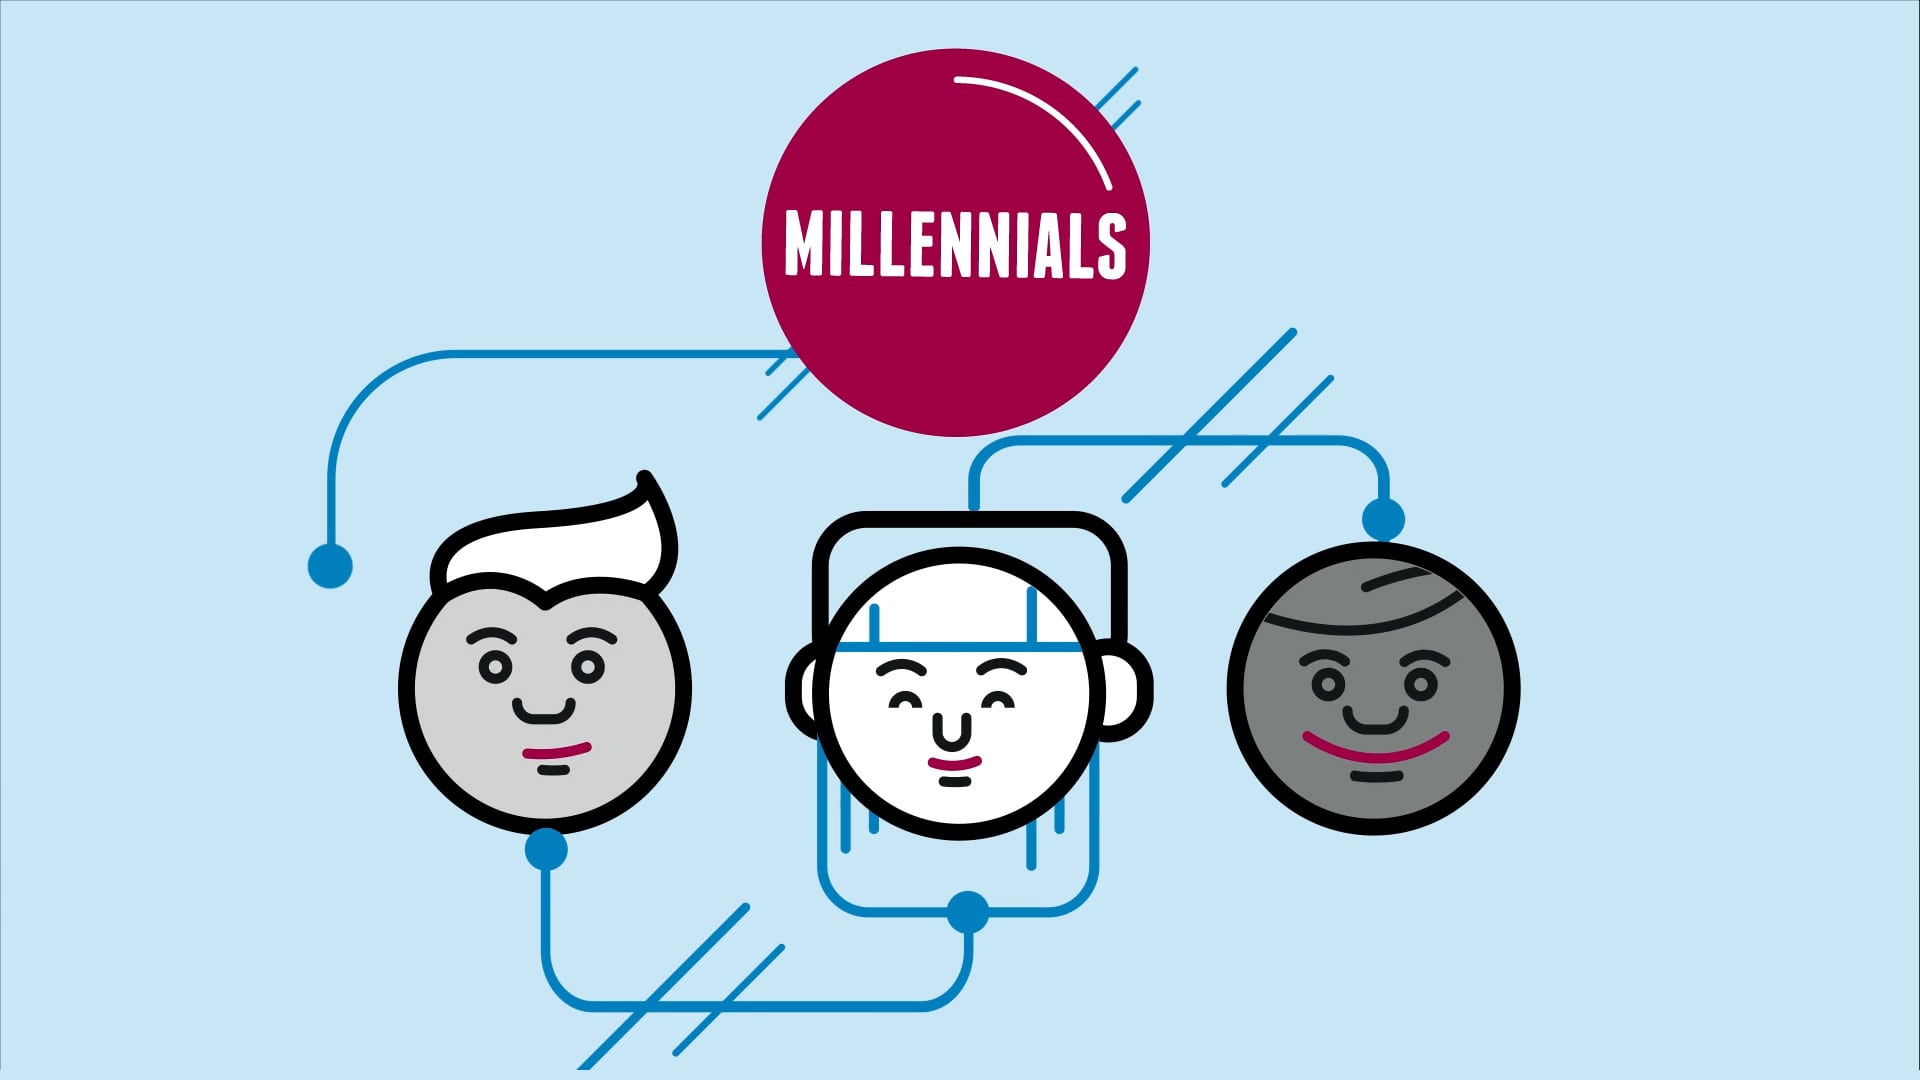 Animated Explainer Video for a Launch Event - 3 heads below Millenials sticker